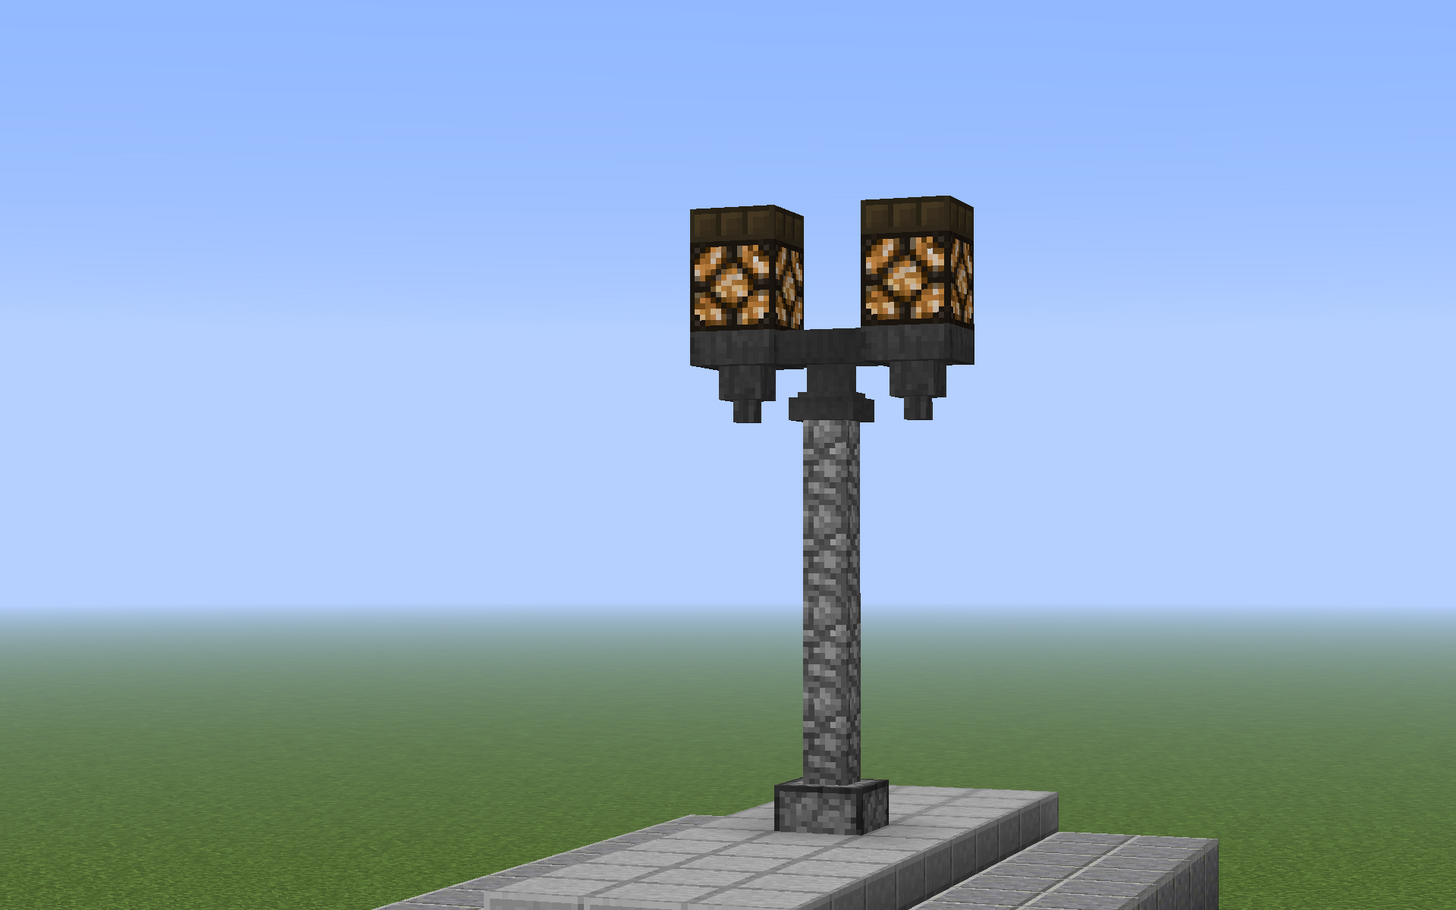 Minecraft lamp post using hoppers and an anvil with daylight minecraft lamp post using hoppers and an anvil with daylight sensors to power the redstone lamps aloadofball Images